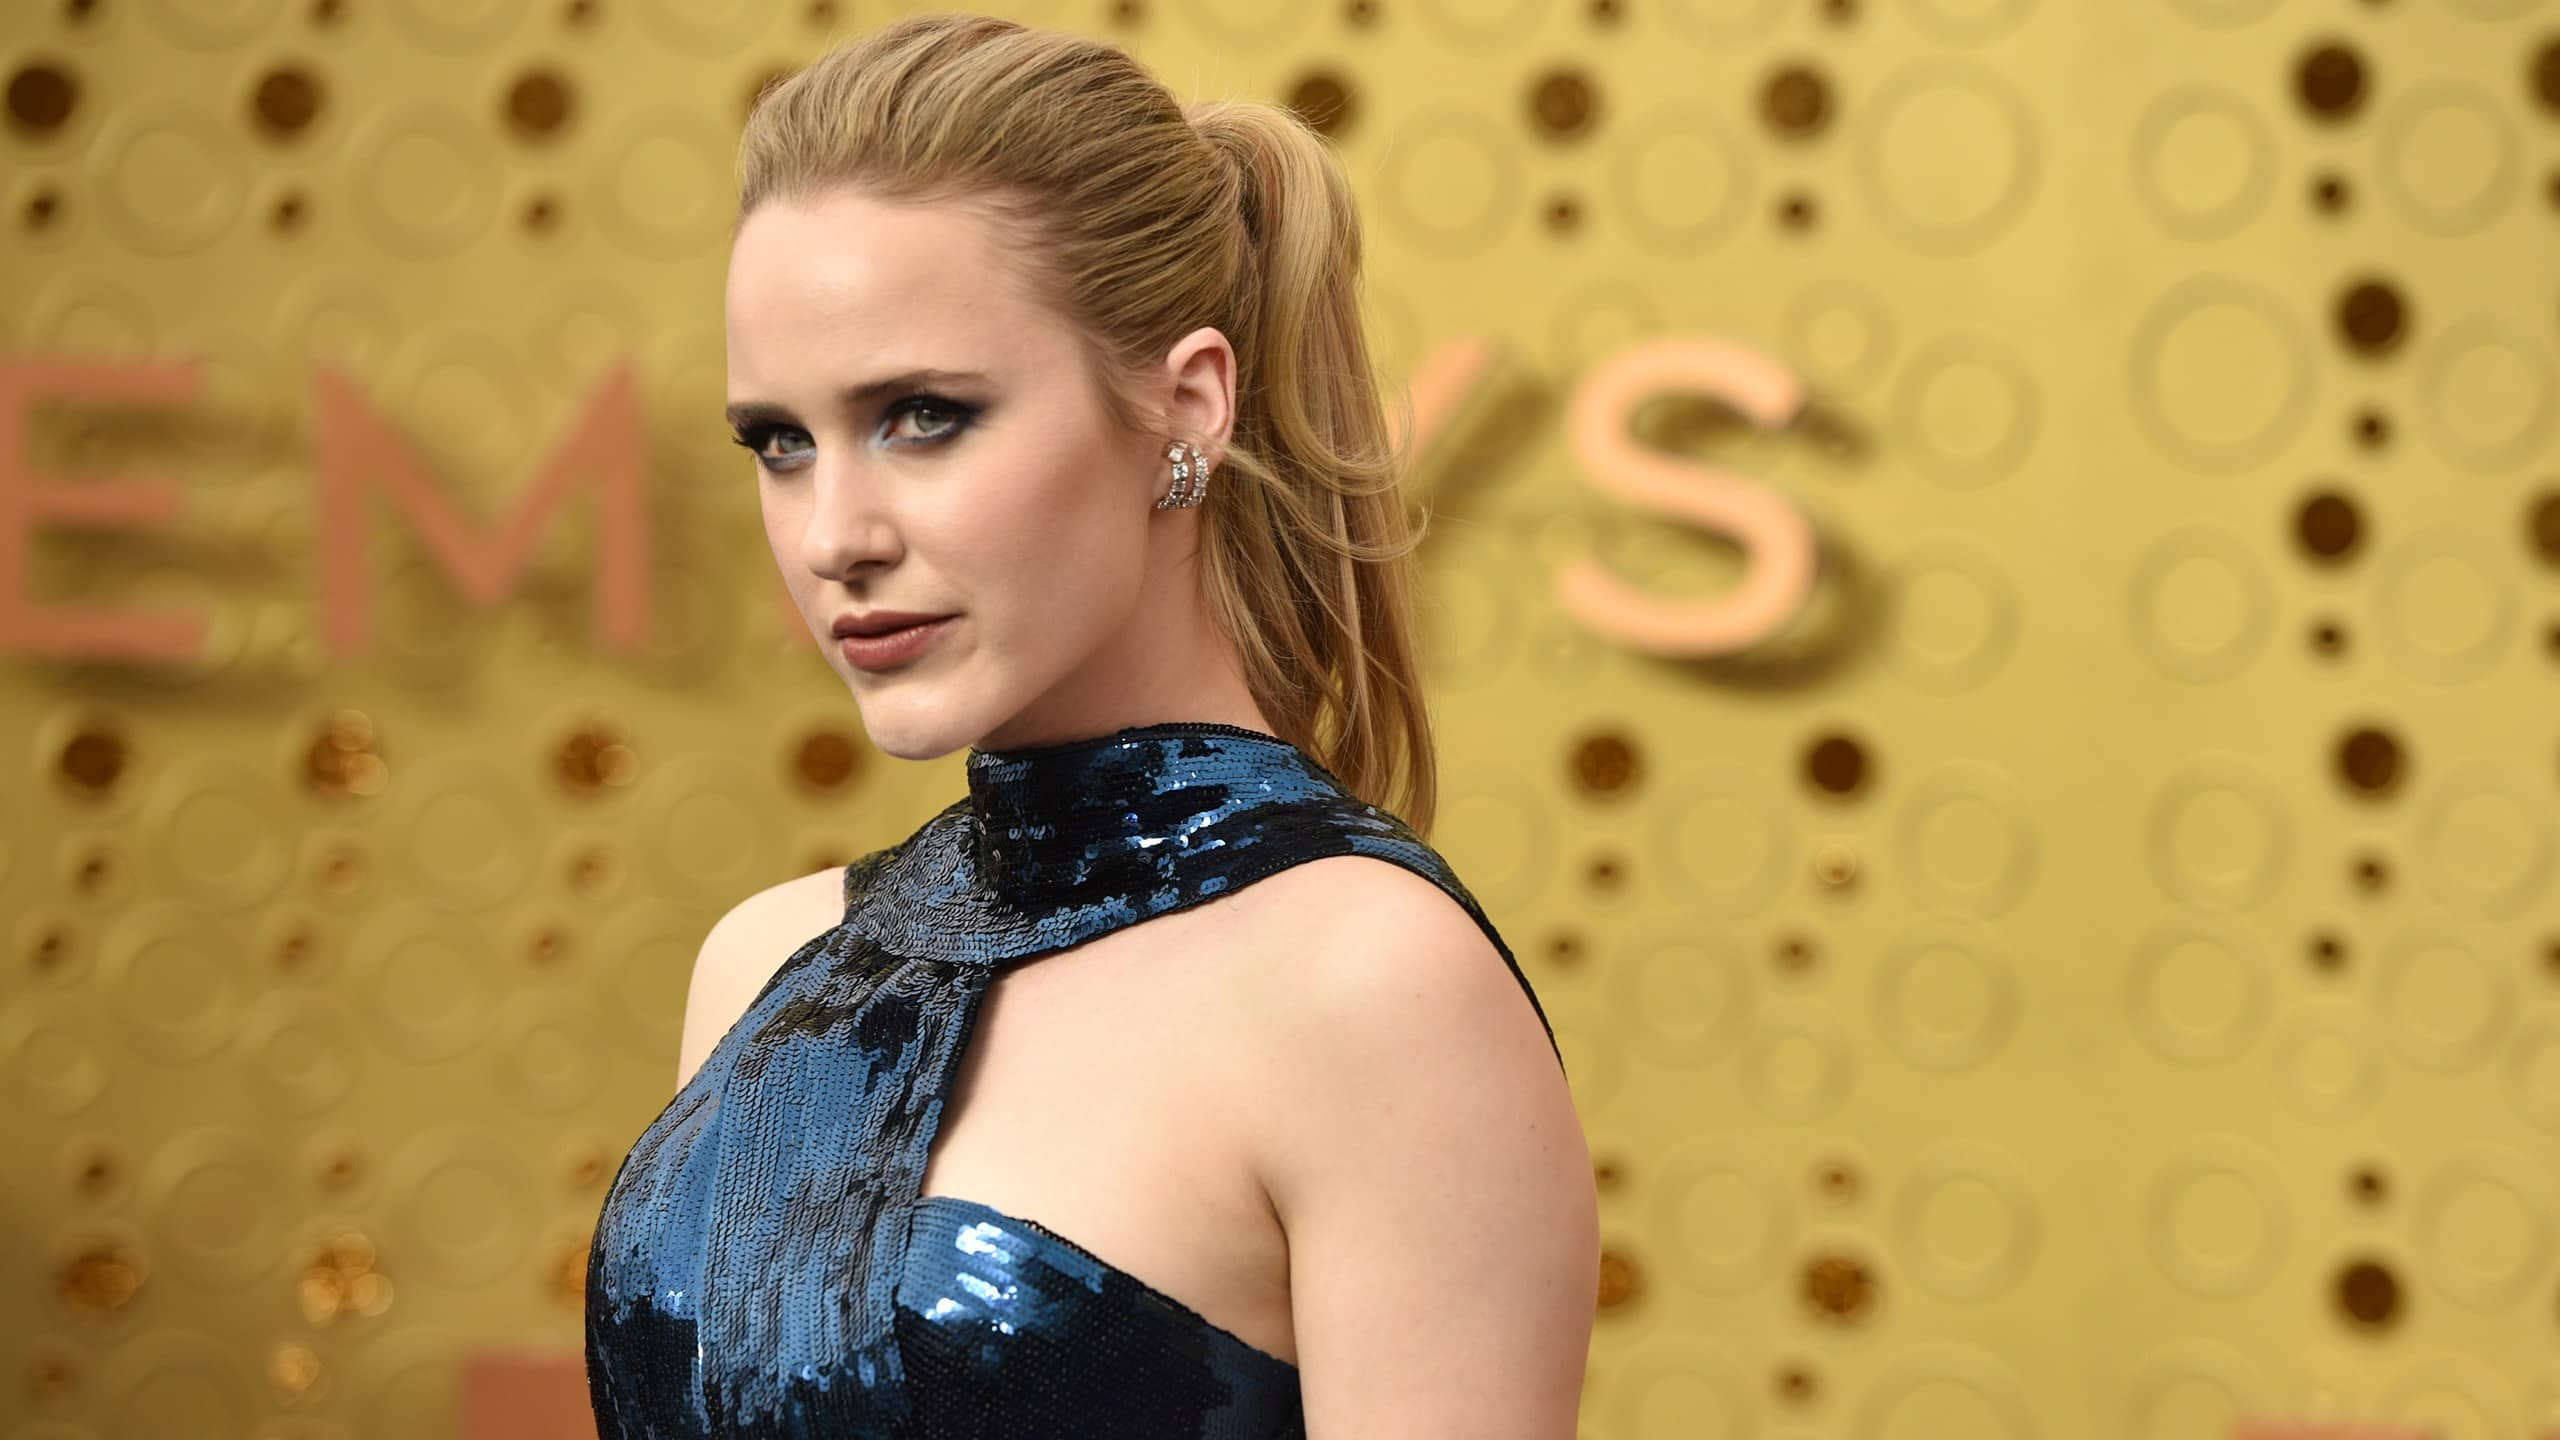 Rachel Brosnahan Of Marvelous Mrs. Maisel Fame Has 'Fused Ribs', Thanks To Her Corset!